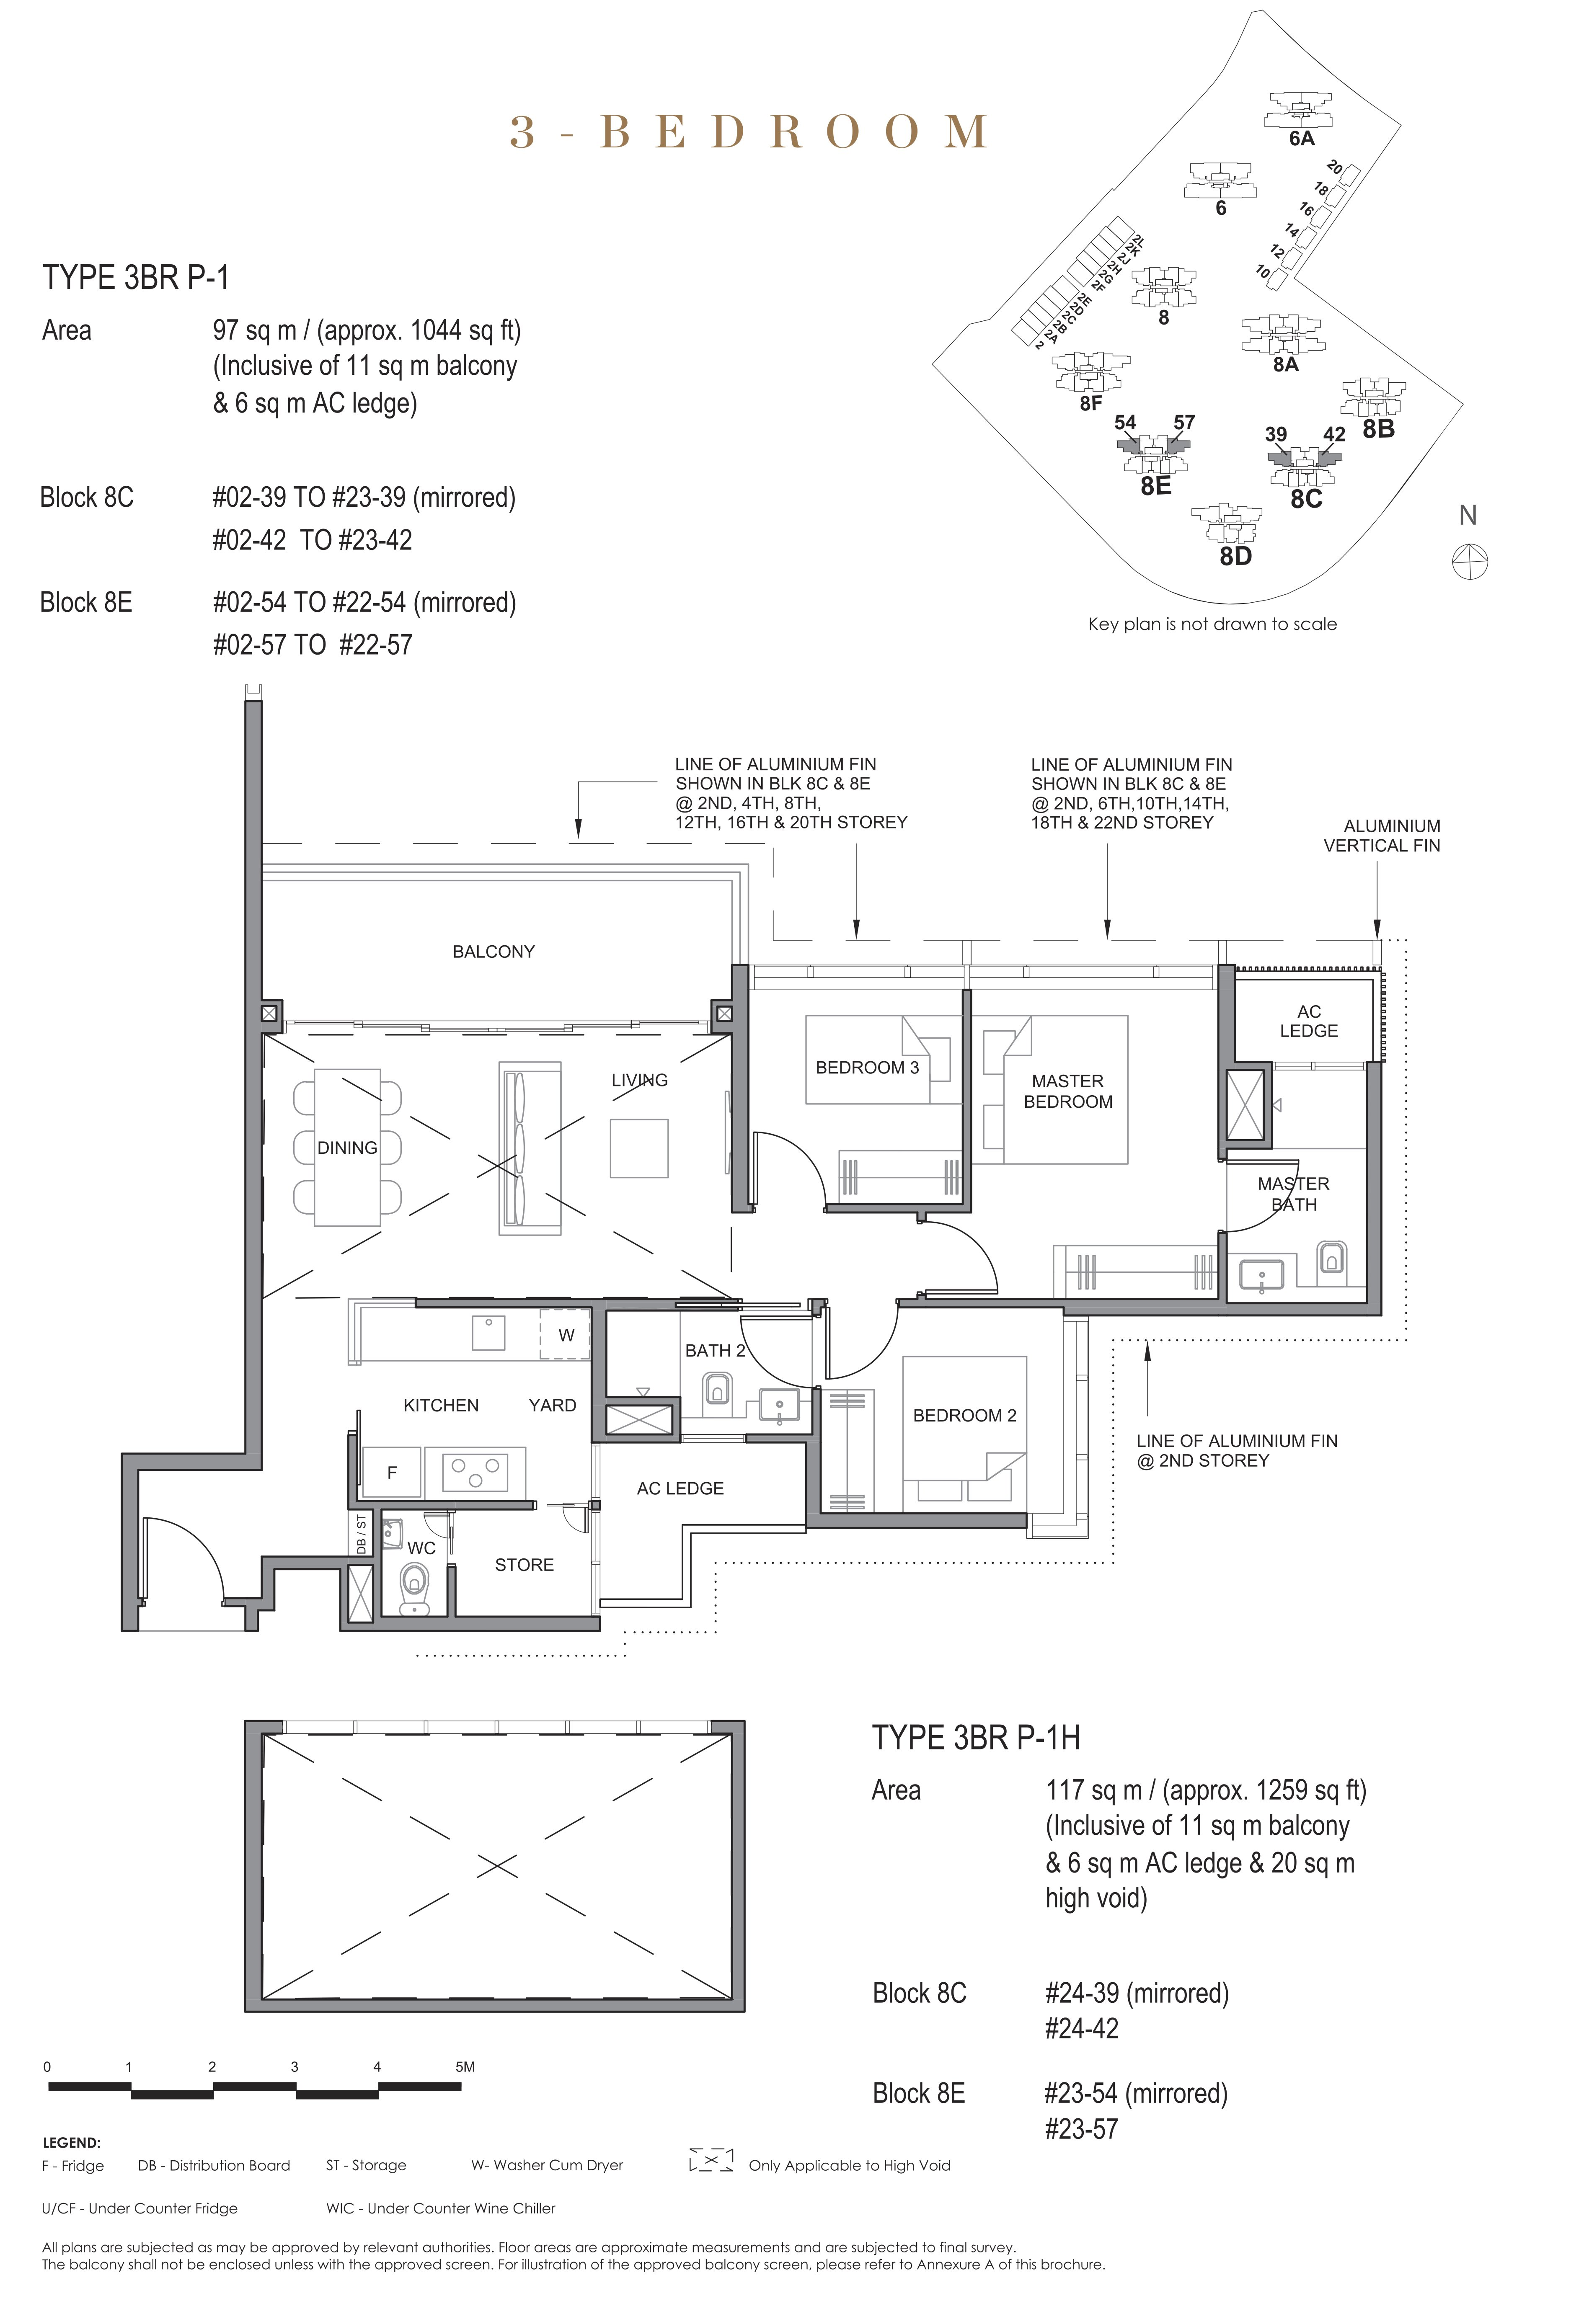 Parc Clematis 锦泰门第 contemporary 3 bedroom 3卧房 3BR-P-1